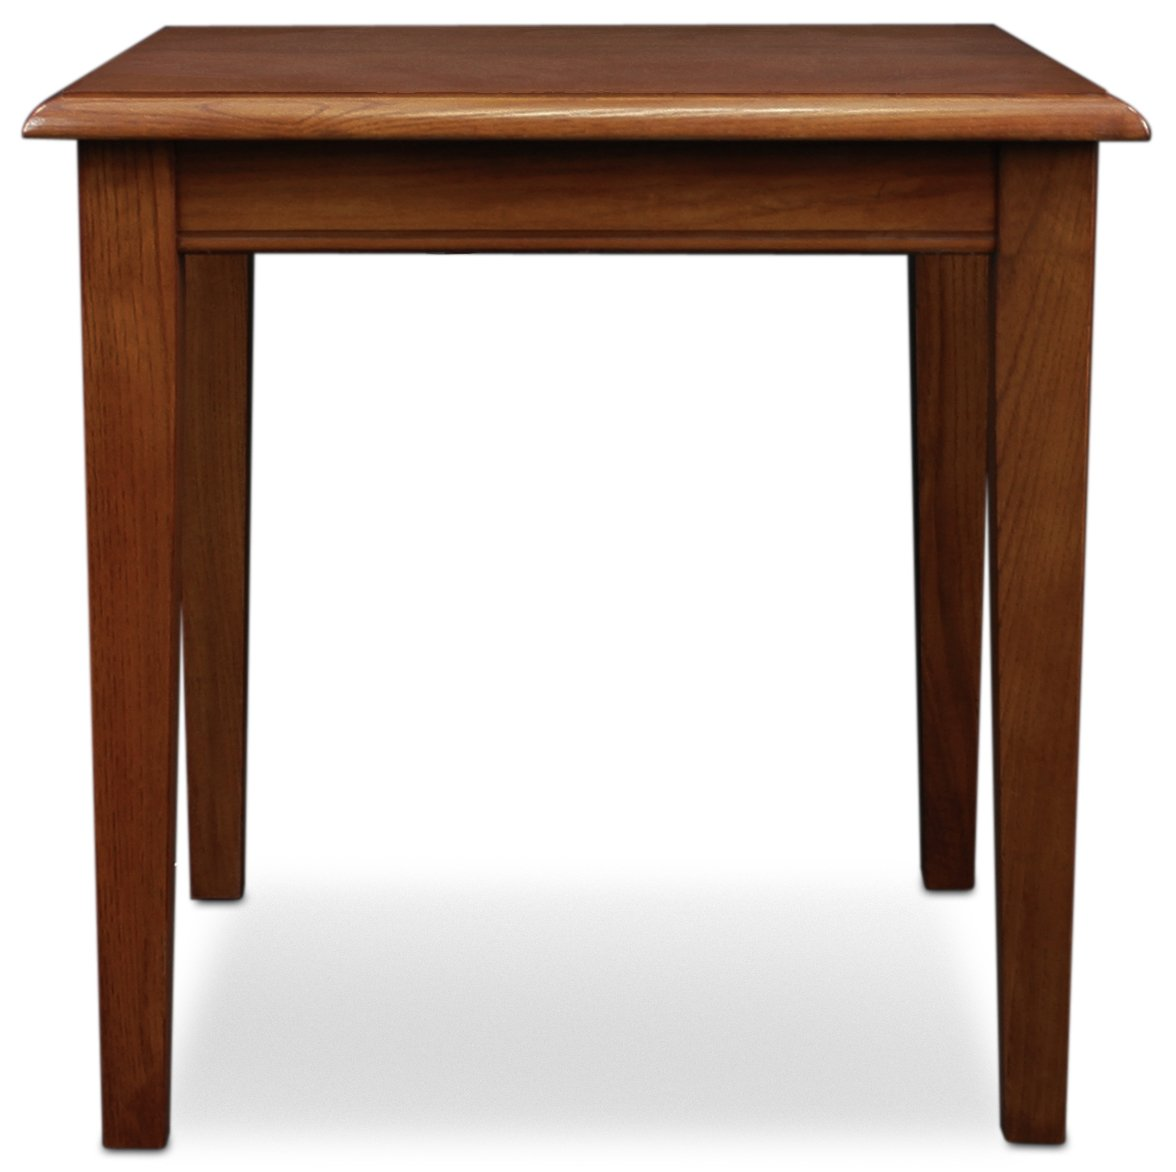 Leick furniture med solid wood stacking table lei